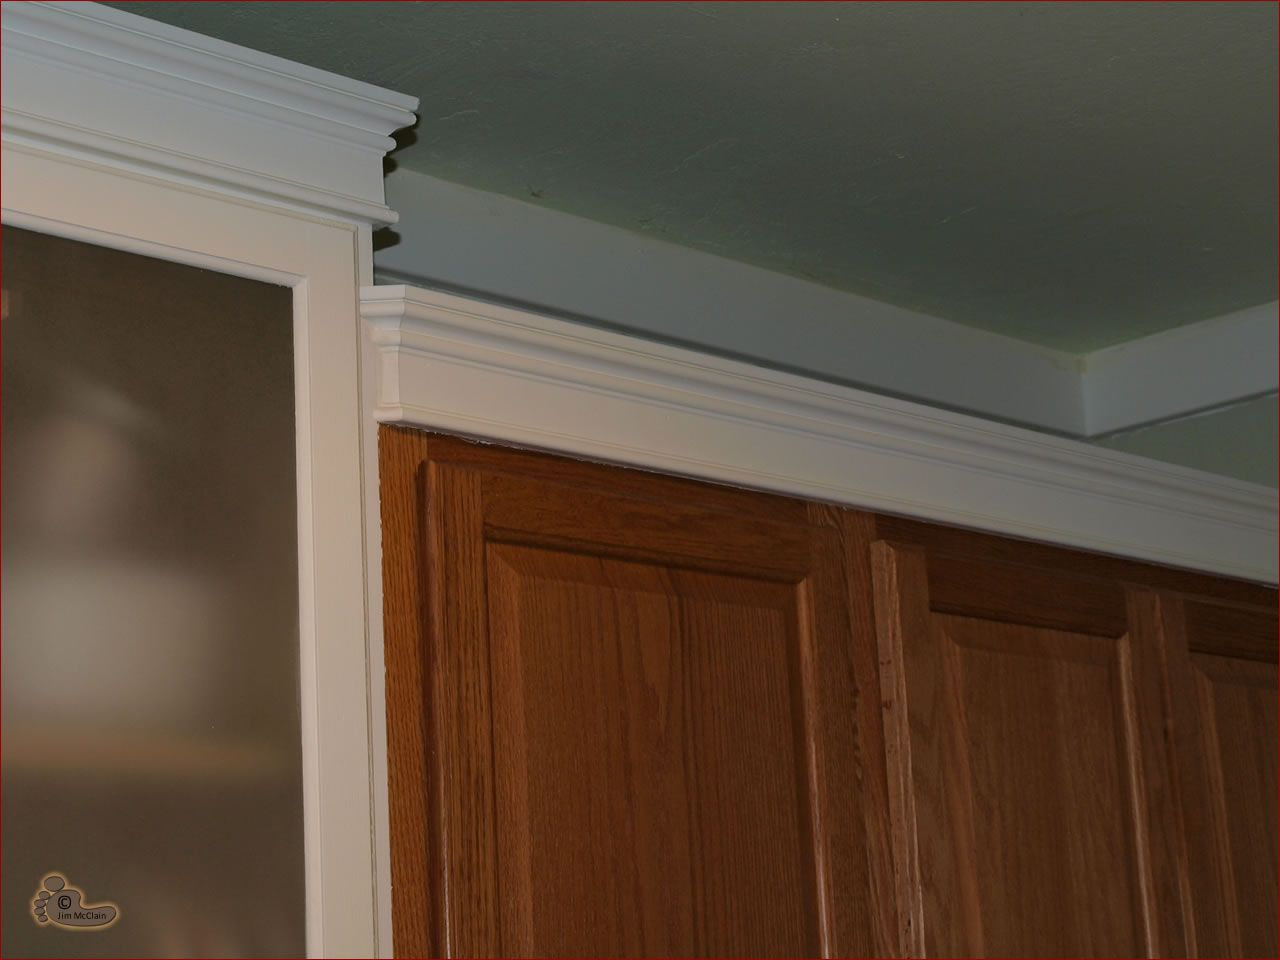 Top Cabinet Molding On Adding Crown Molding On Kitchen Cabinets Kitchen  Cabinet Jpg Cabinet Molding